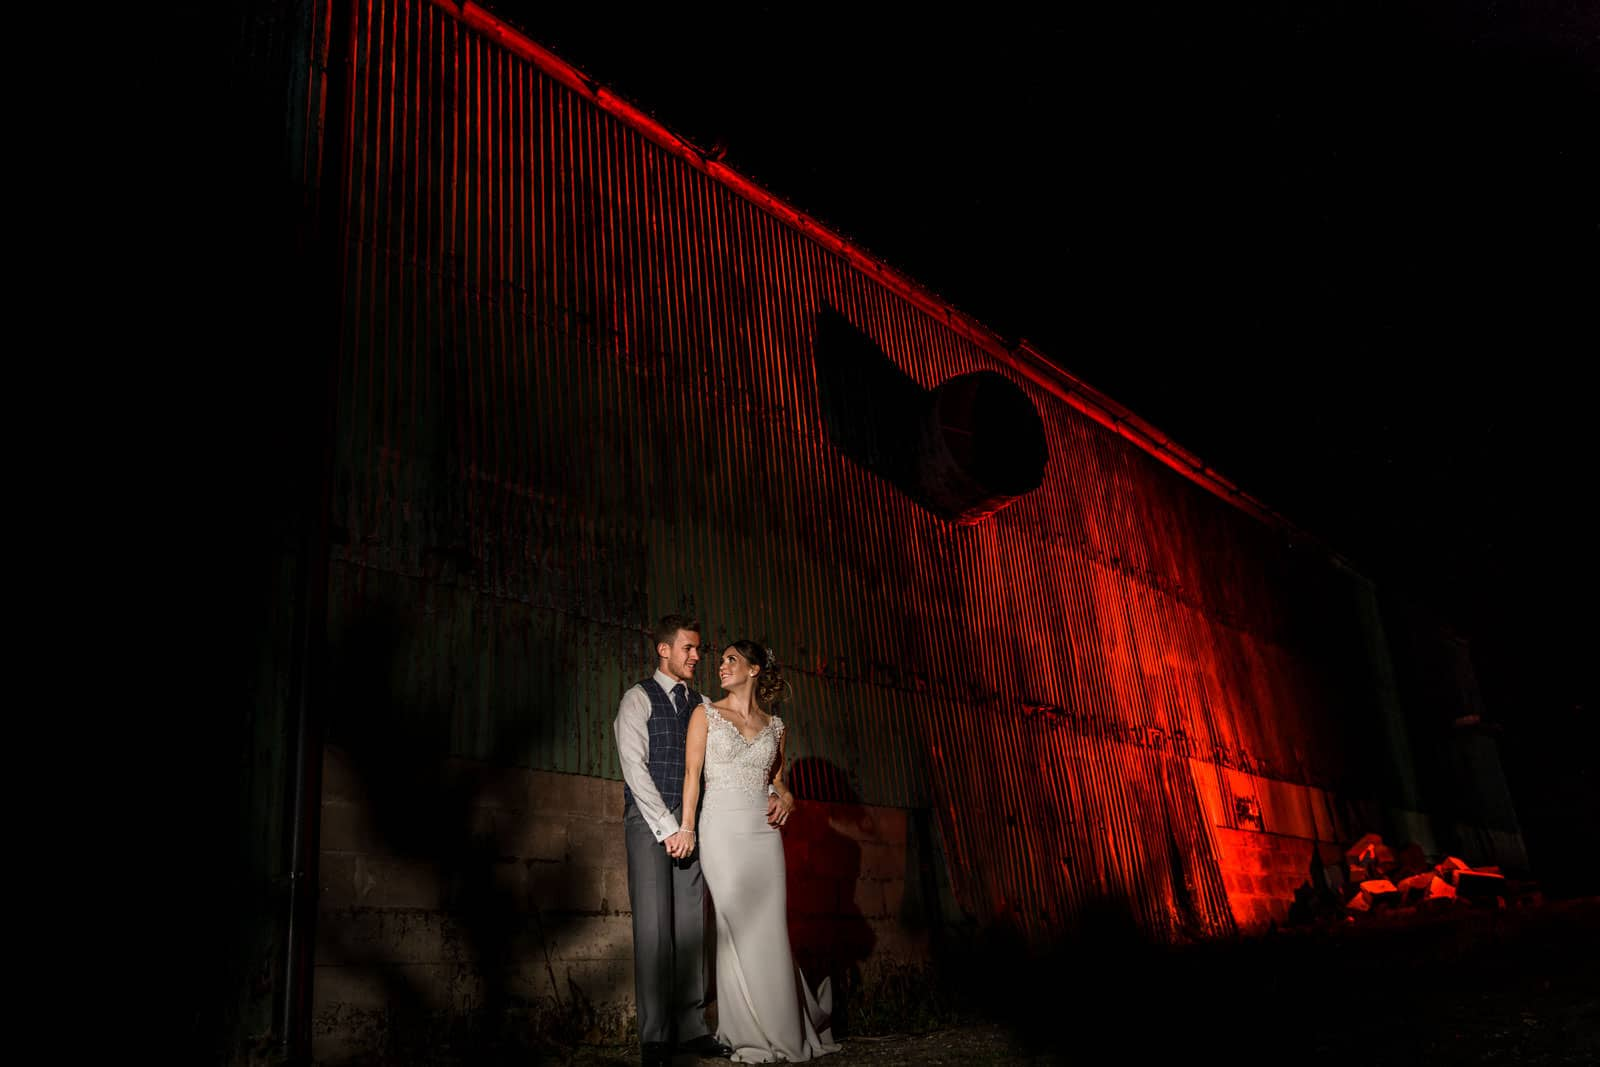 The Reidrooms wedding photography off camera flash of happy couple using magmod